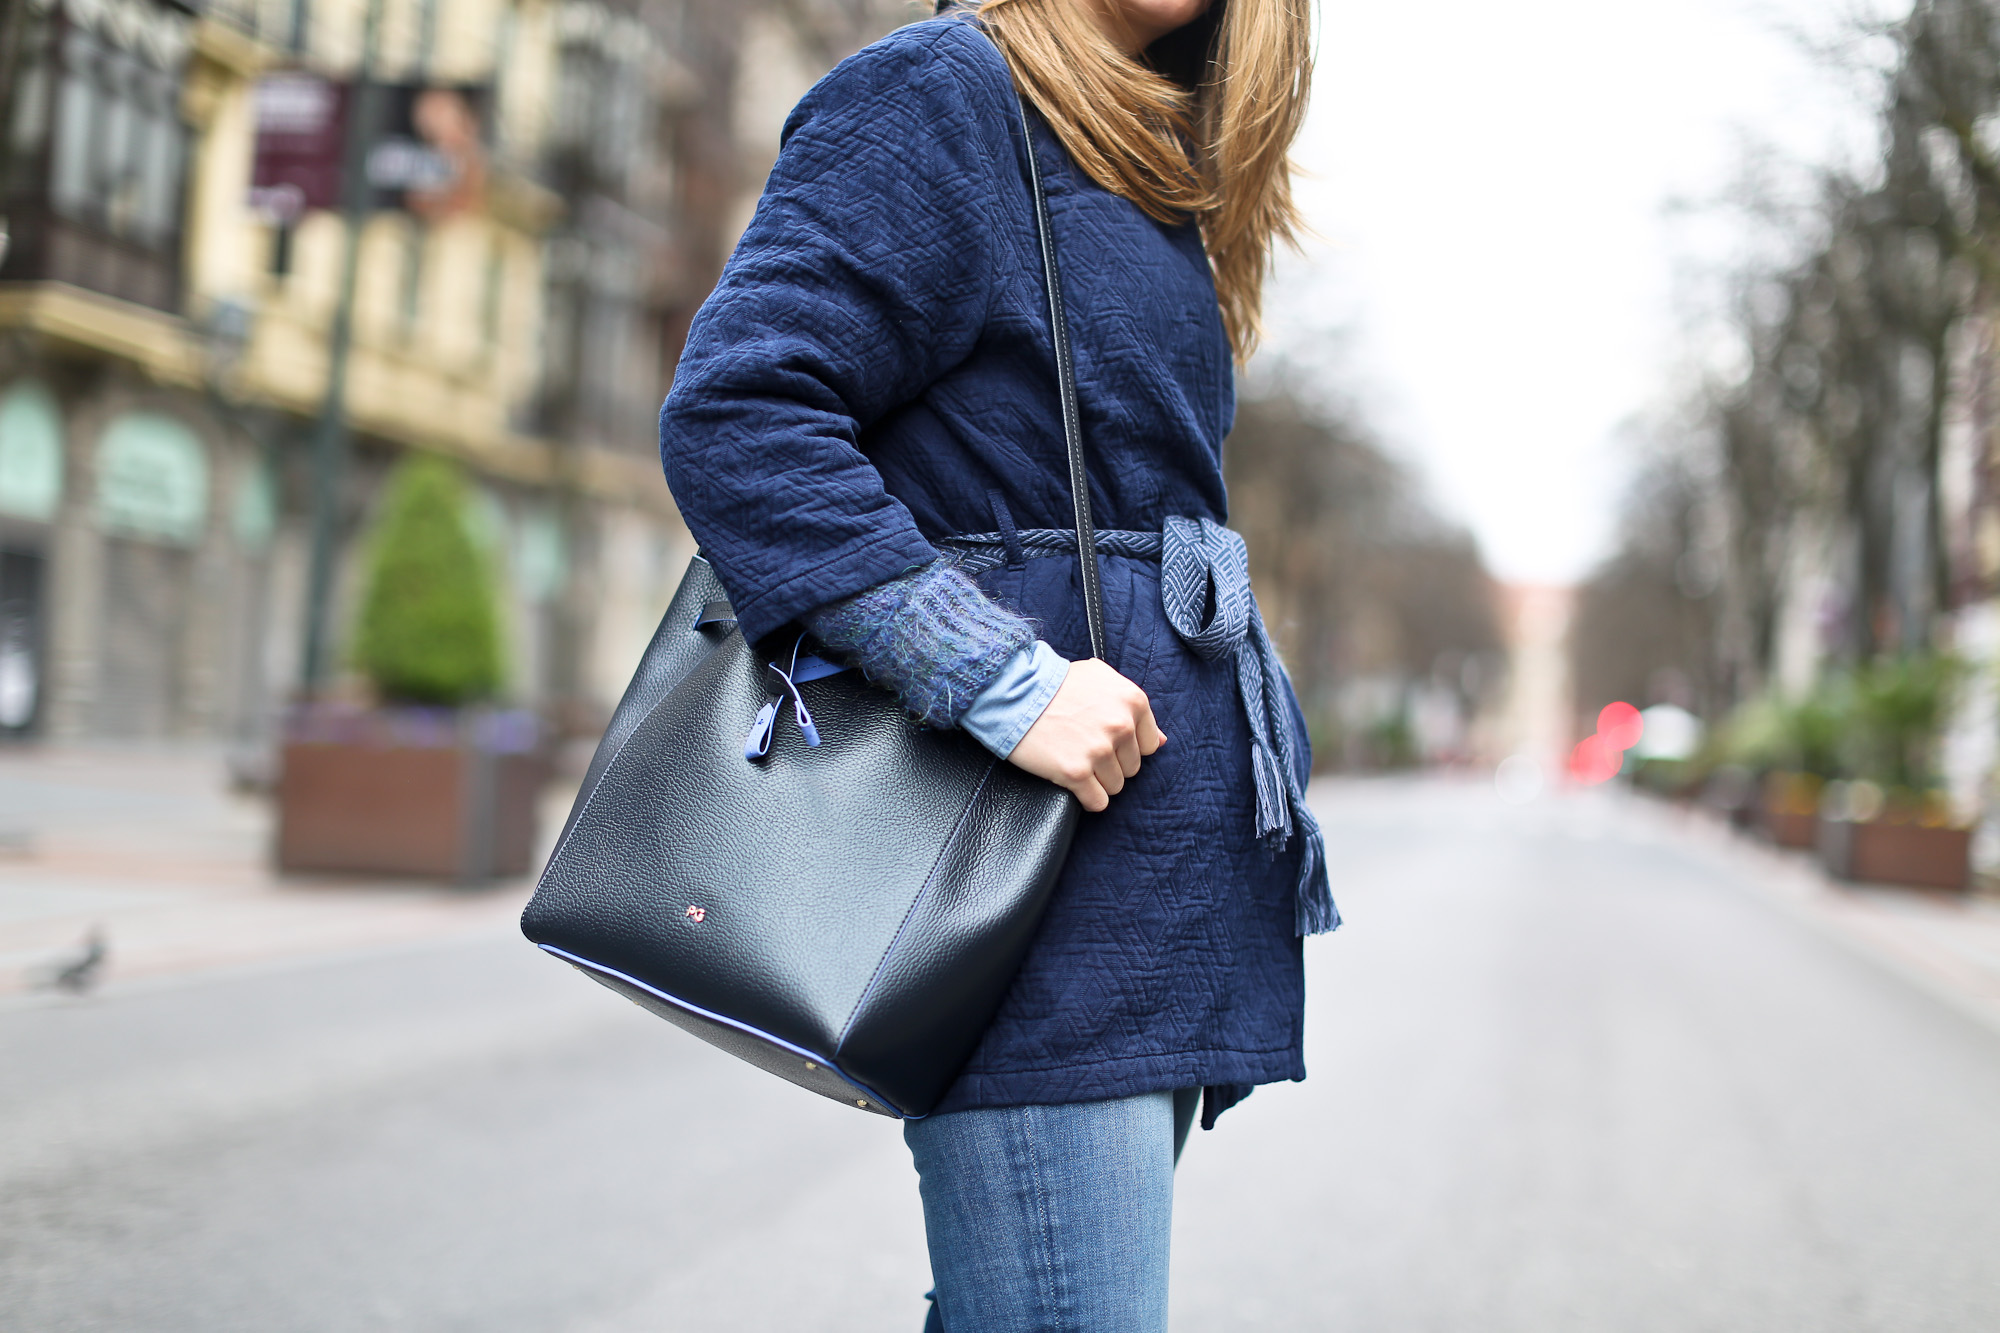 Clochet_streetstyle_pepejeans_skinny_jeans_purificaciongarcia_bucket_bag-11